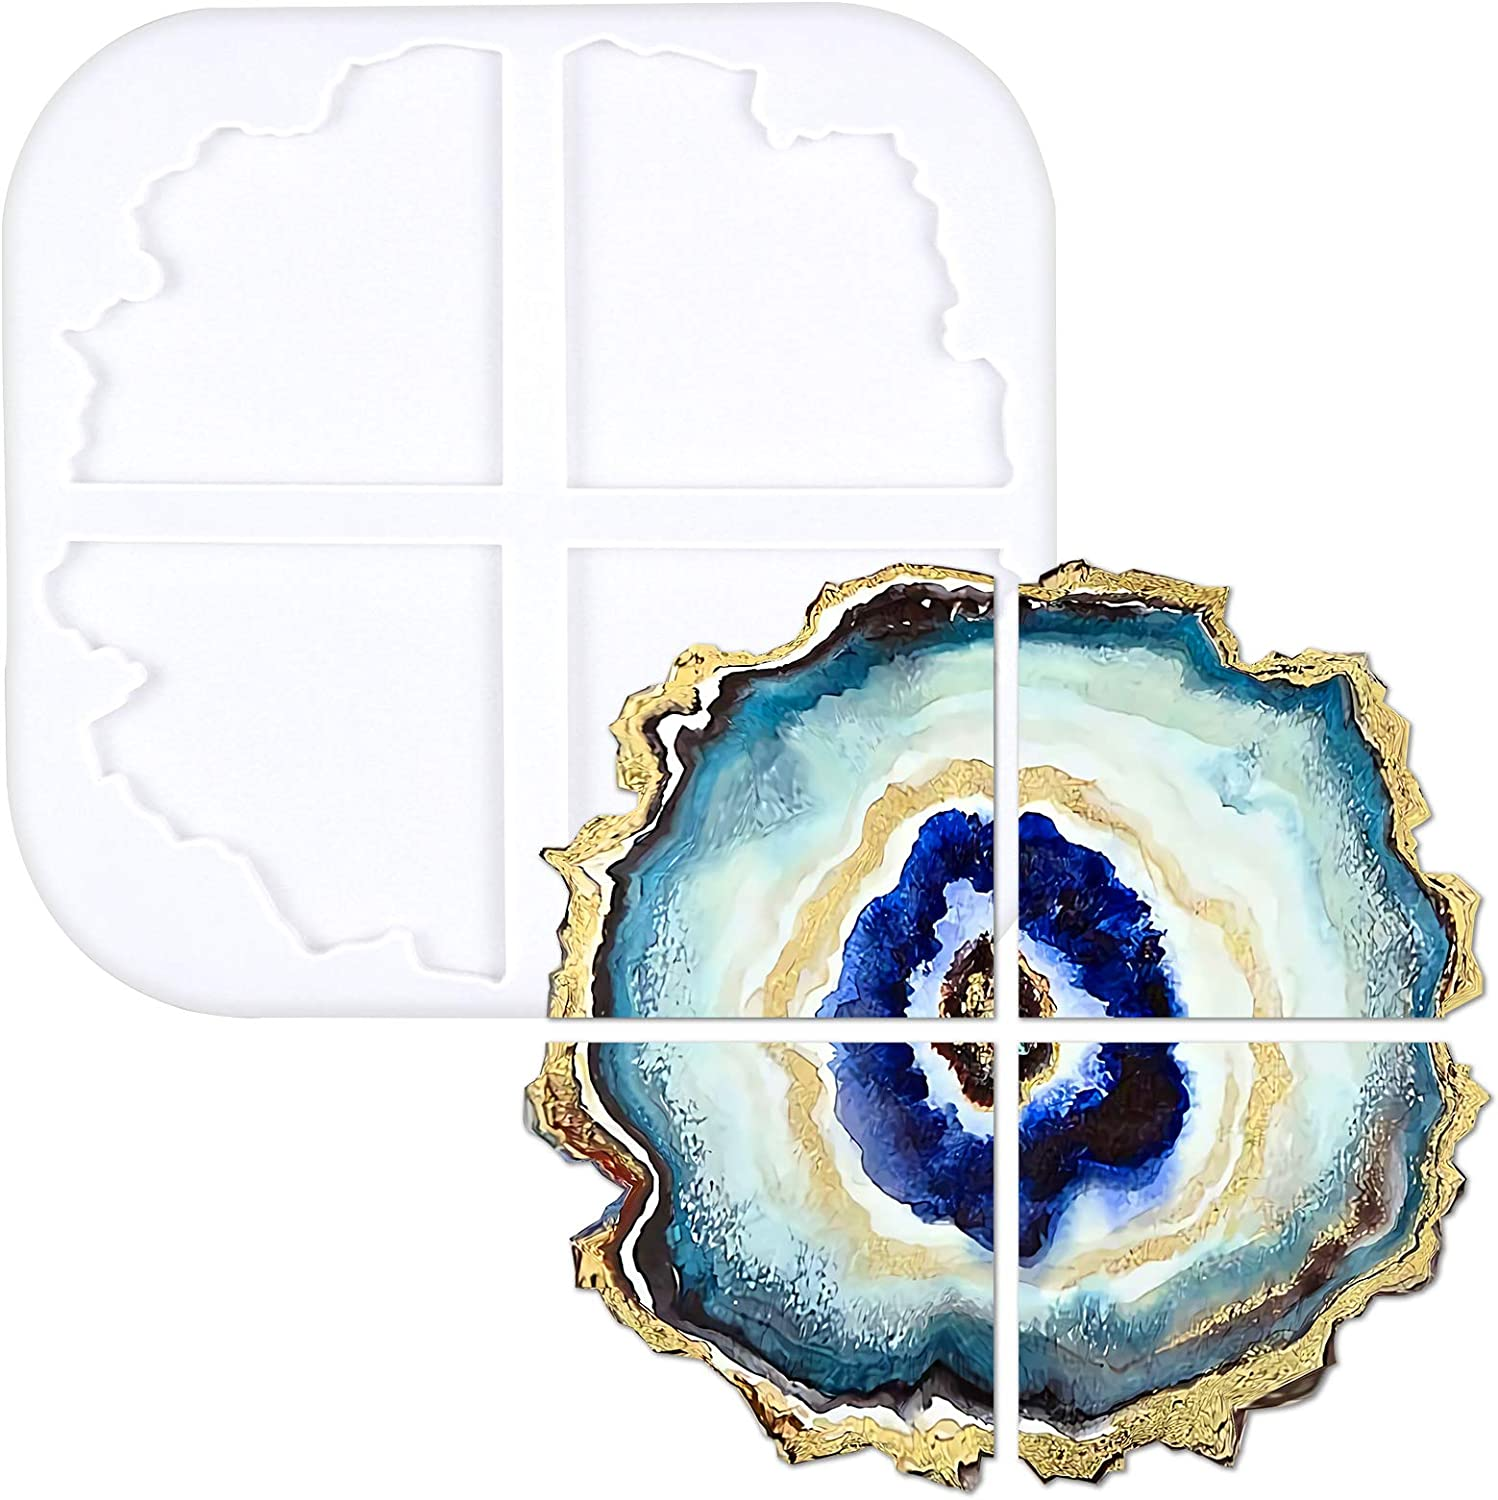 Silicone Resin Molds 1 Pcs Large Resin Tray Mold 4 Pack Geode Agate Coaster M